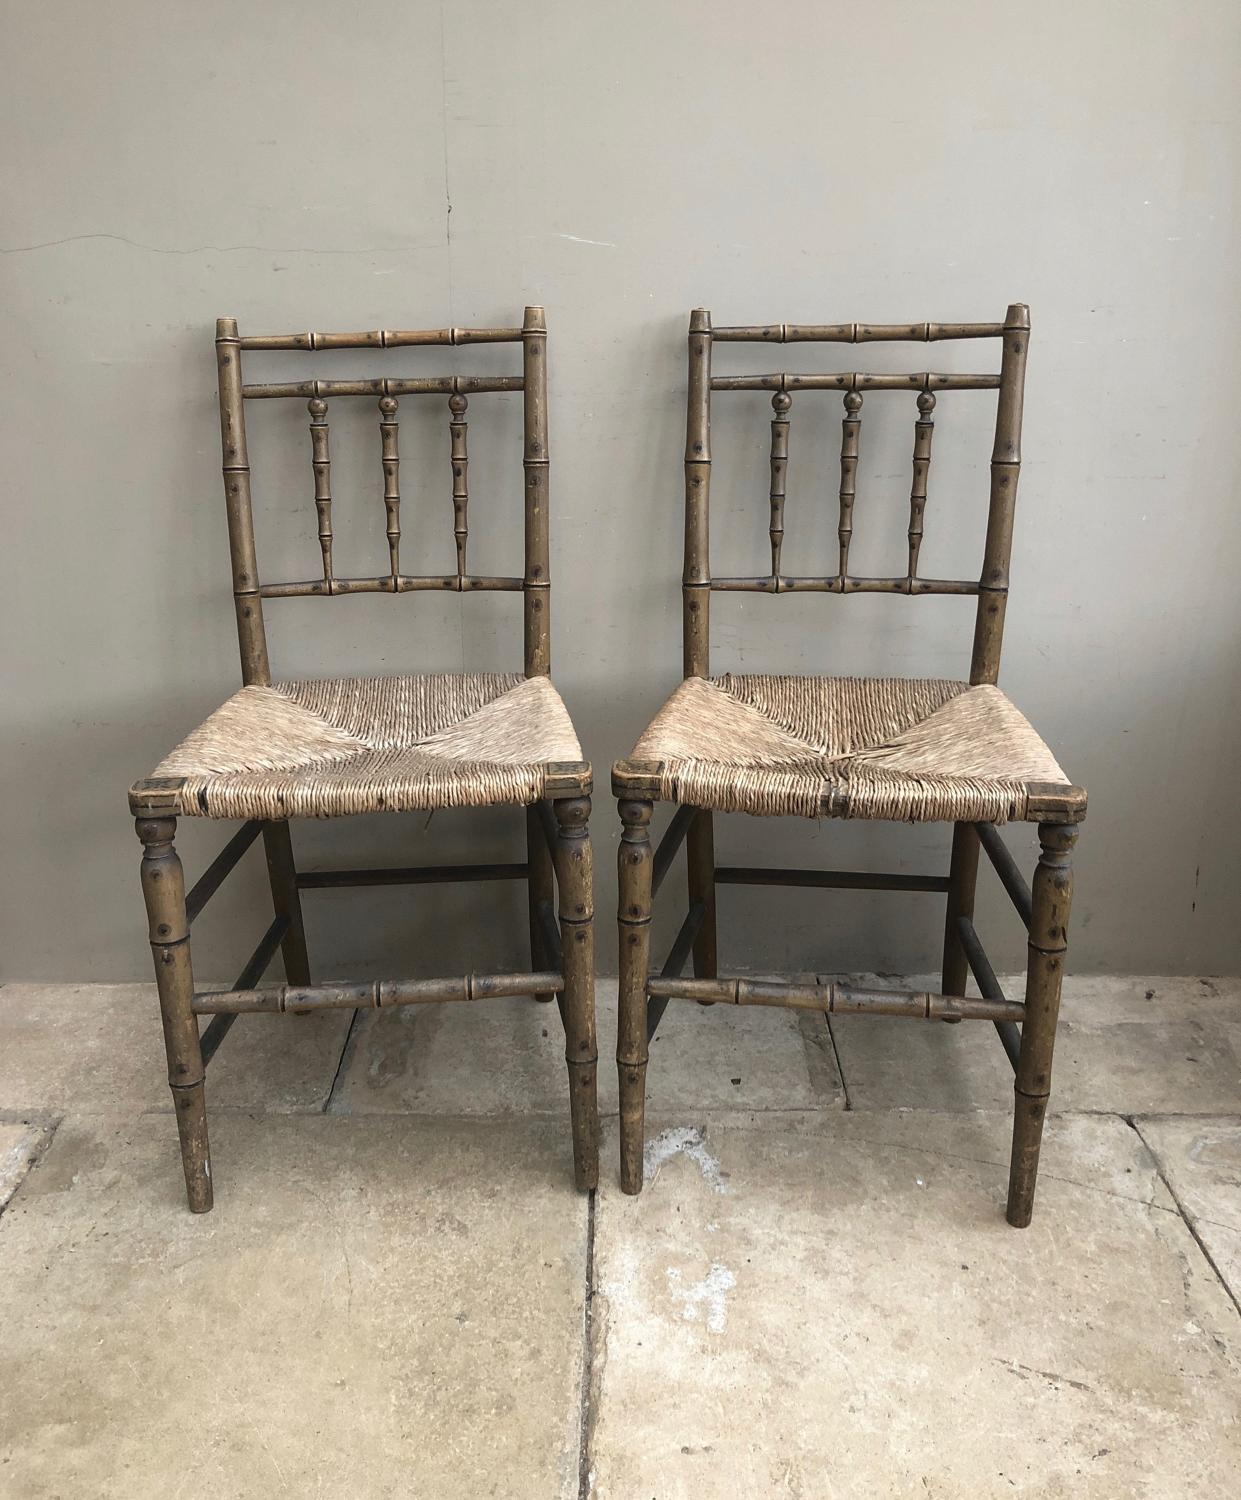 Matched Pair of Early Victorian Painted Pine Rush Seat Chairs